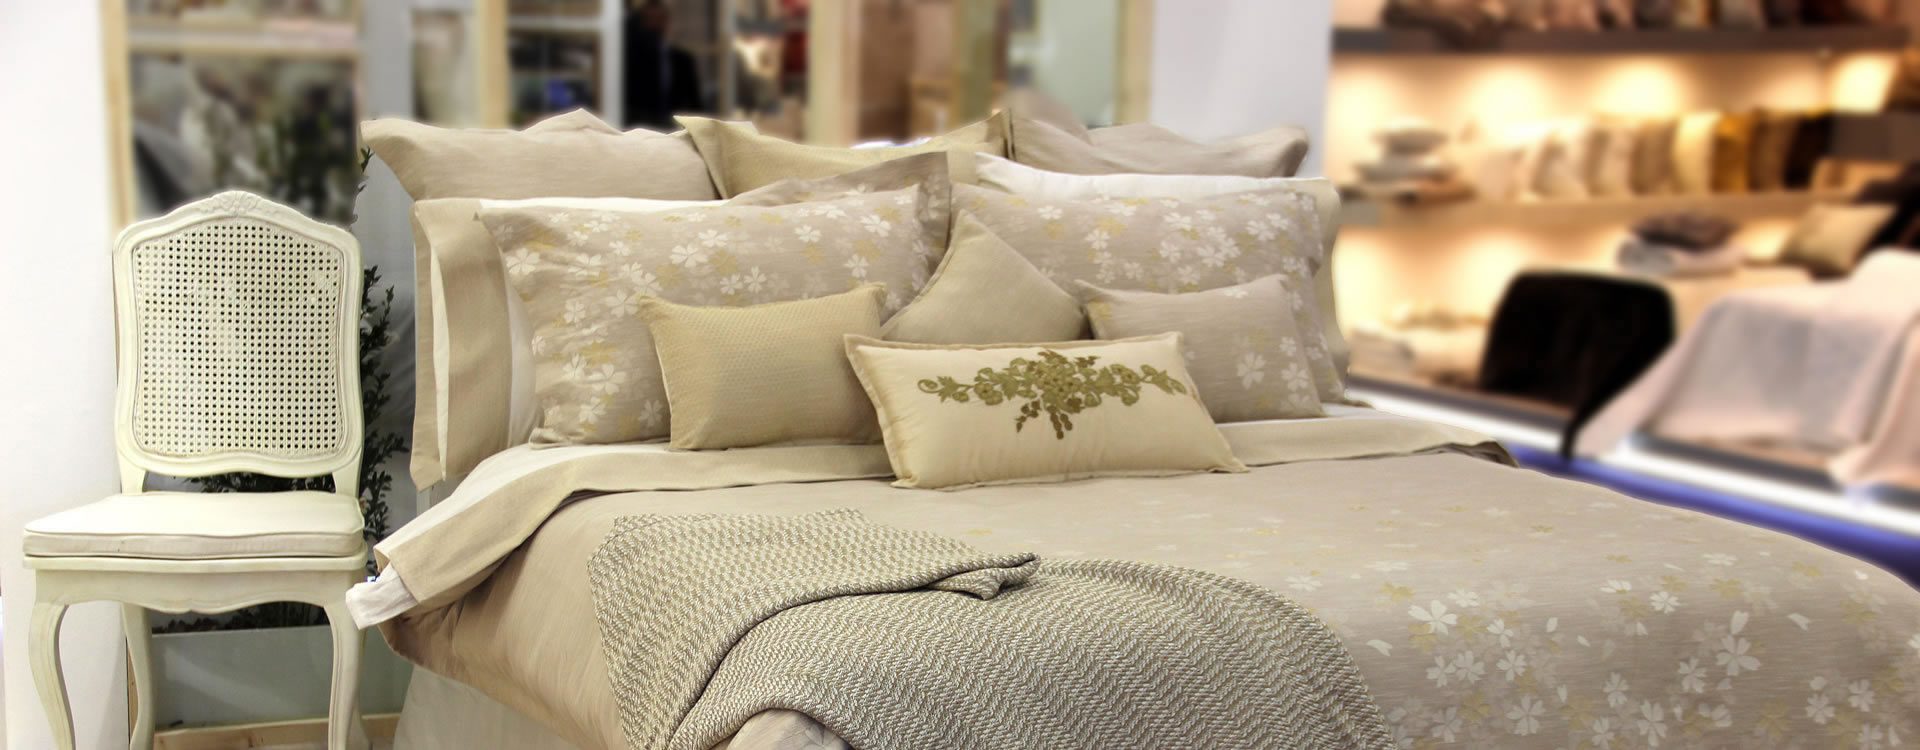 Experience a cotton treat of high-end bedding fashions